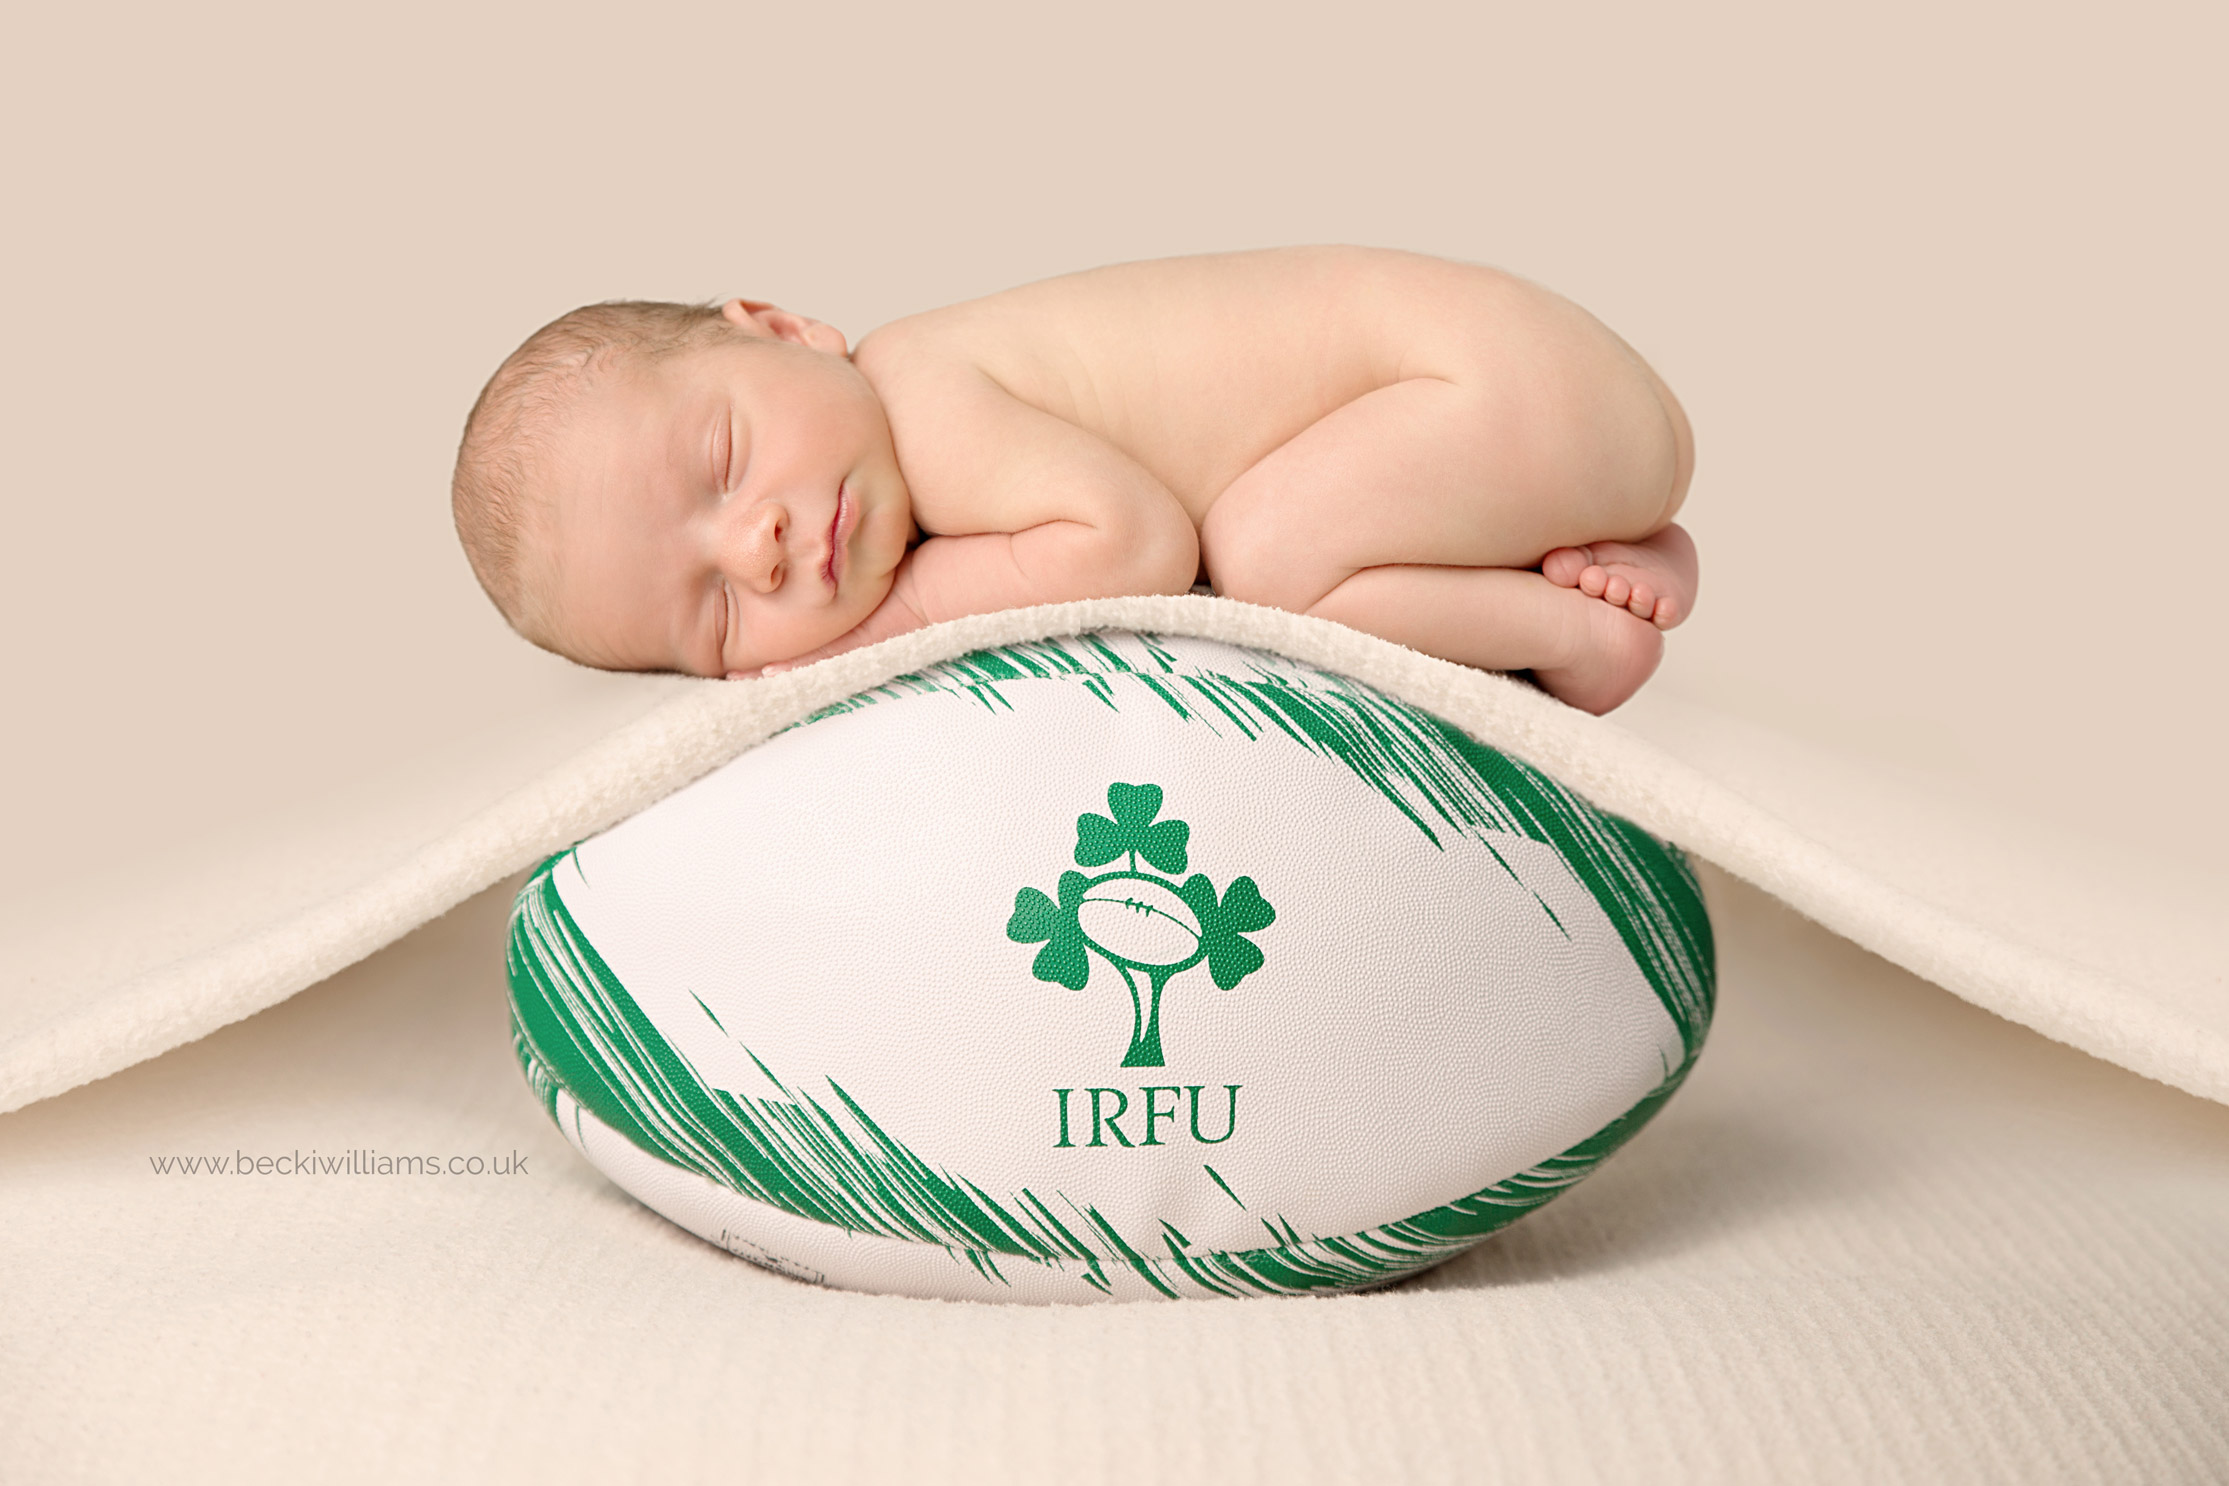 newborn baby on rugby ball for newborn baby photoshoot in hemel hempstead with becki williams photography - this is a composite!